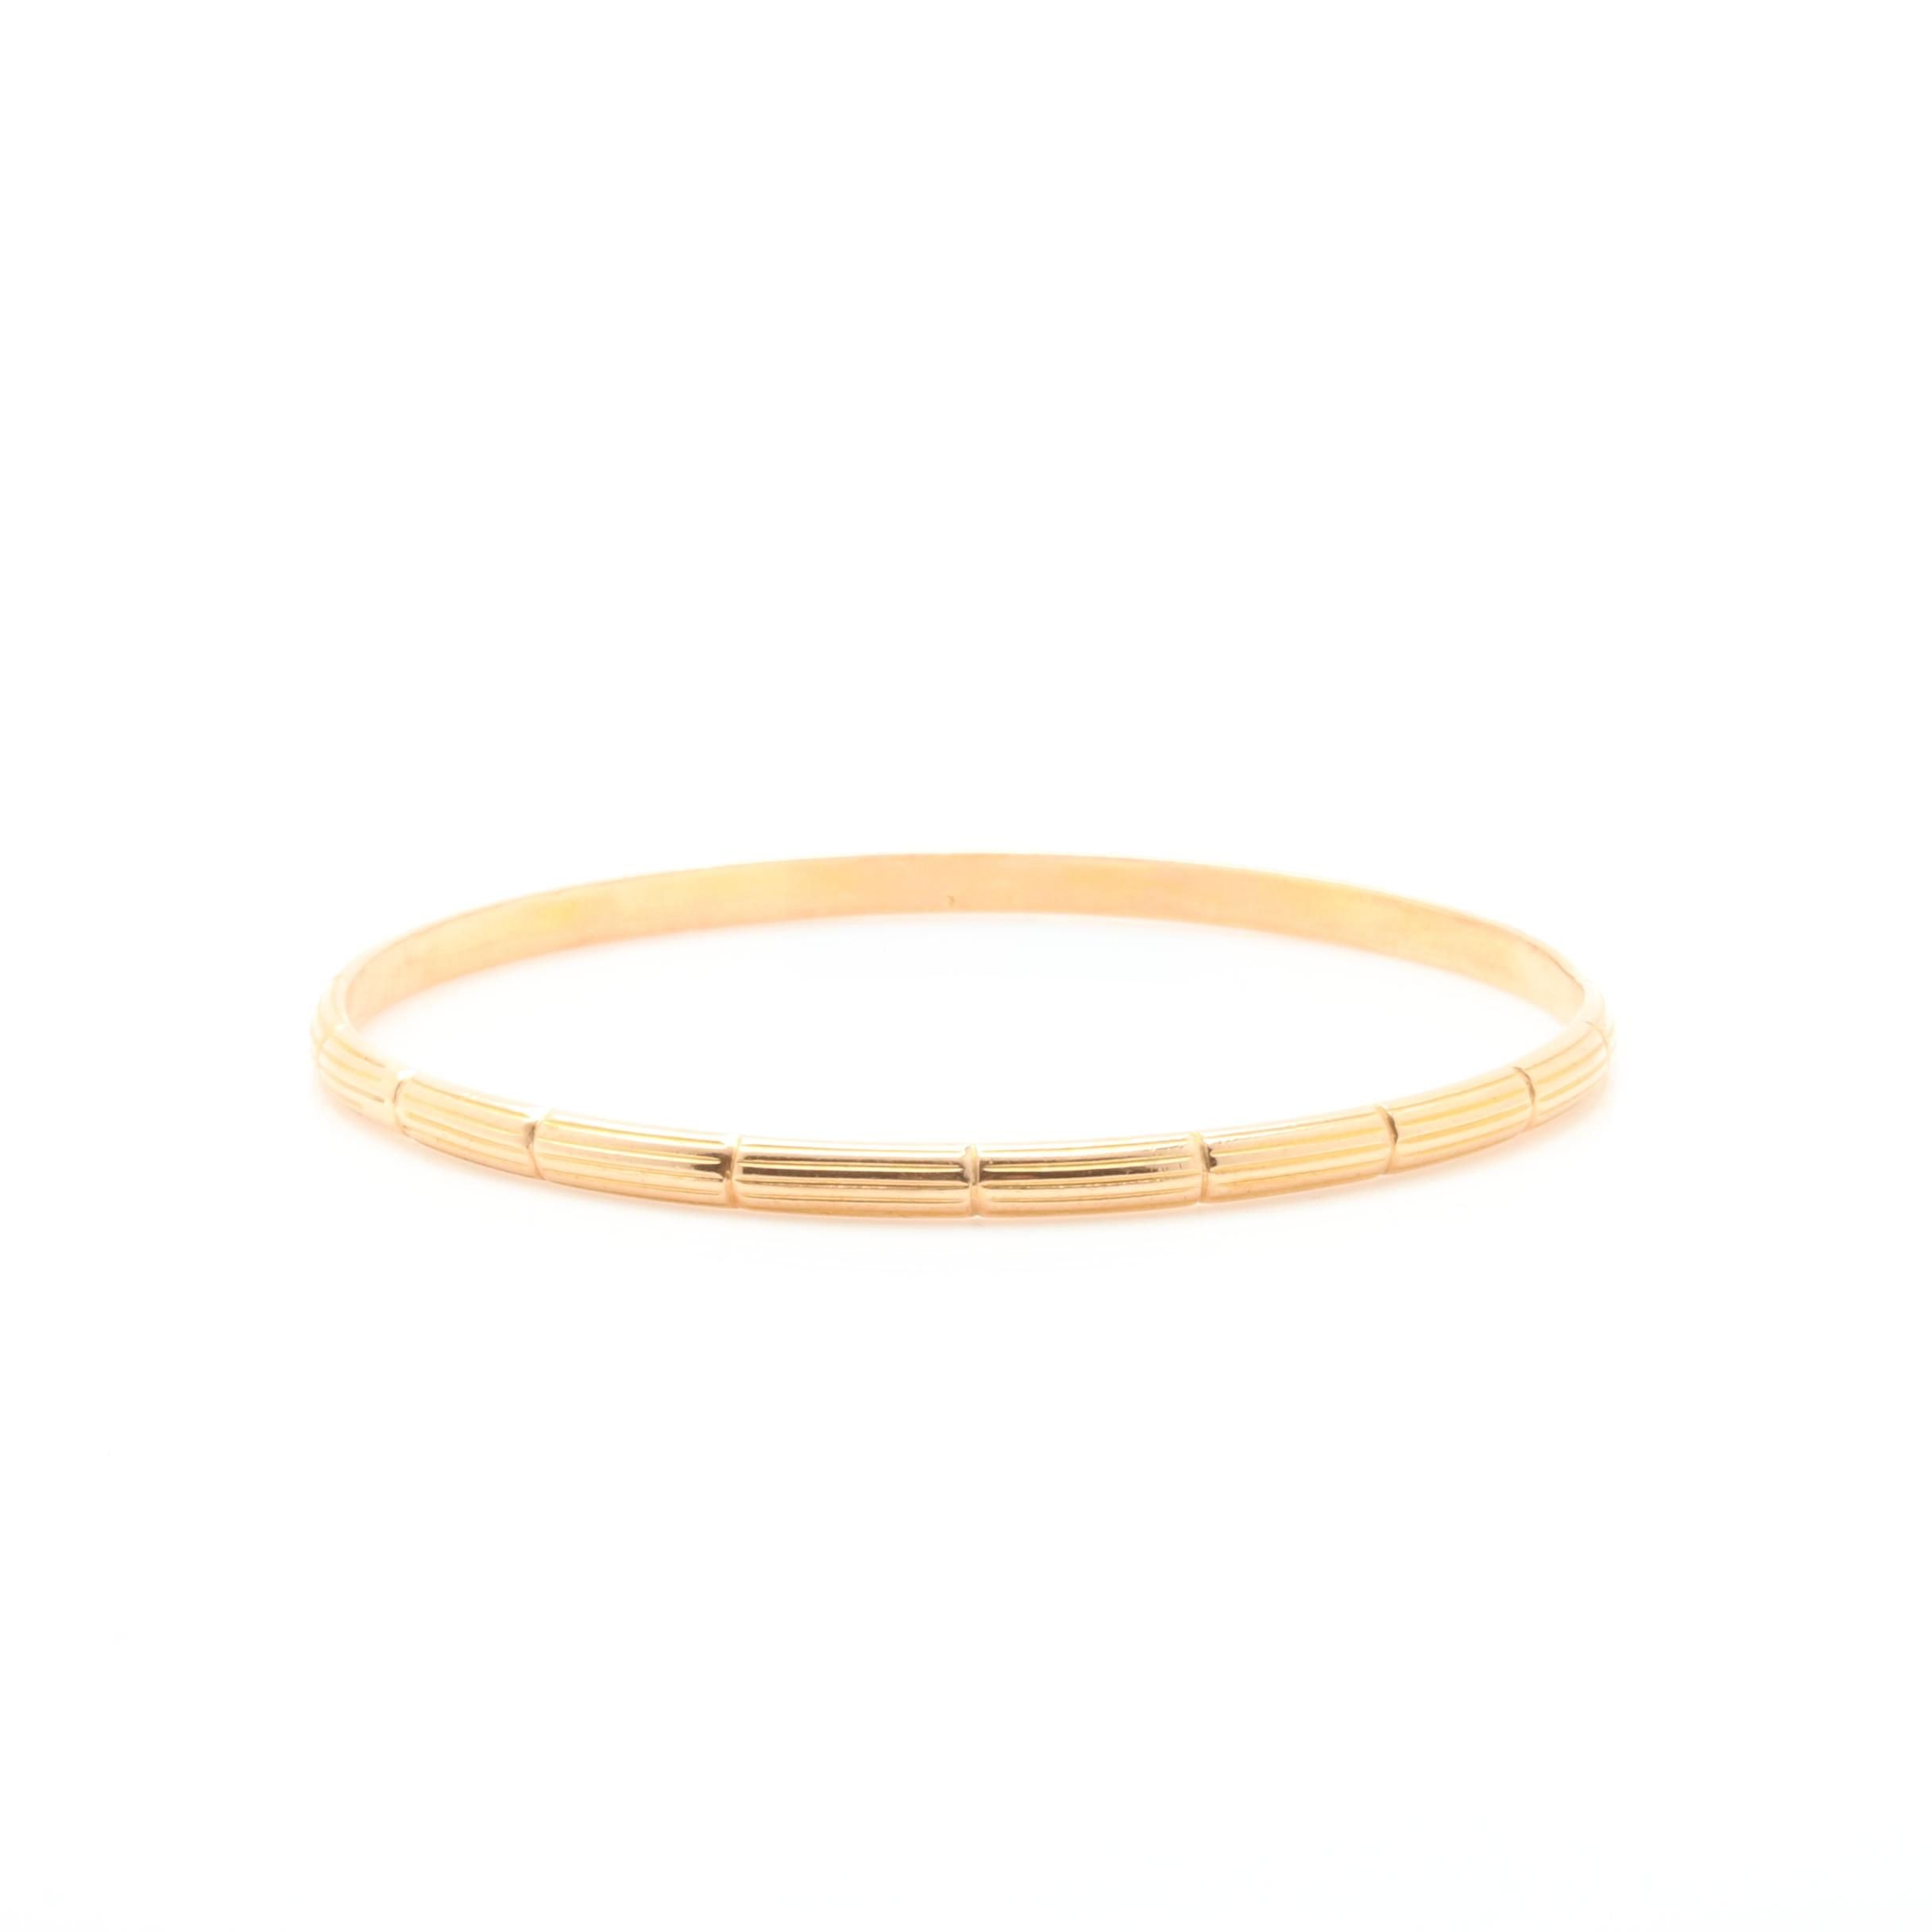 18K Yellow Gold Ridged Bangle Bracelet